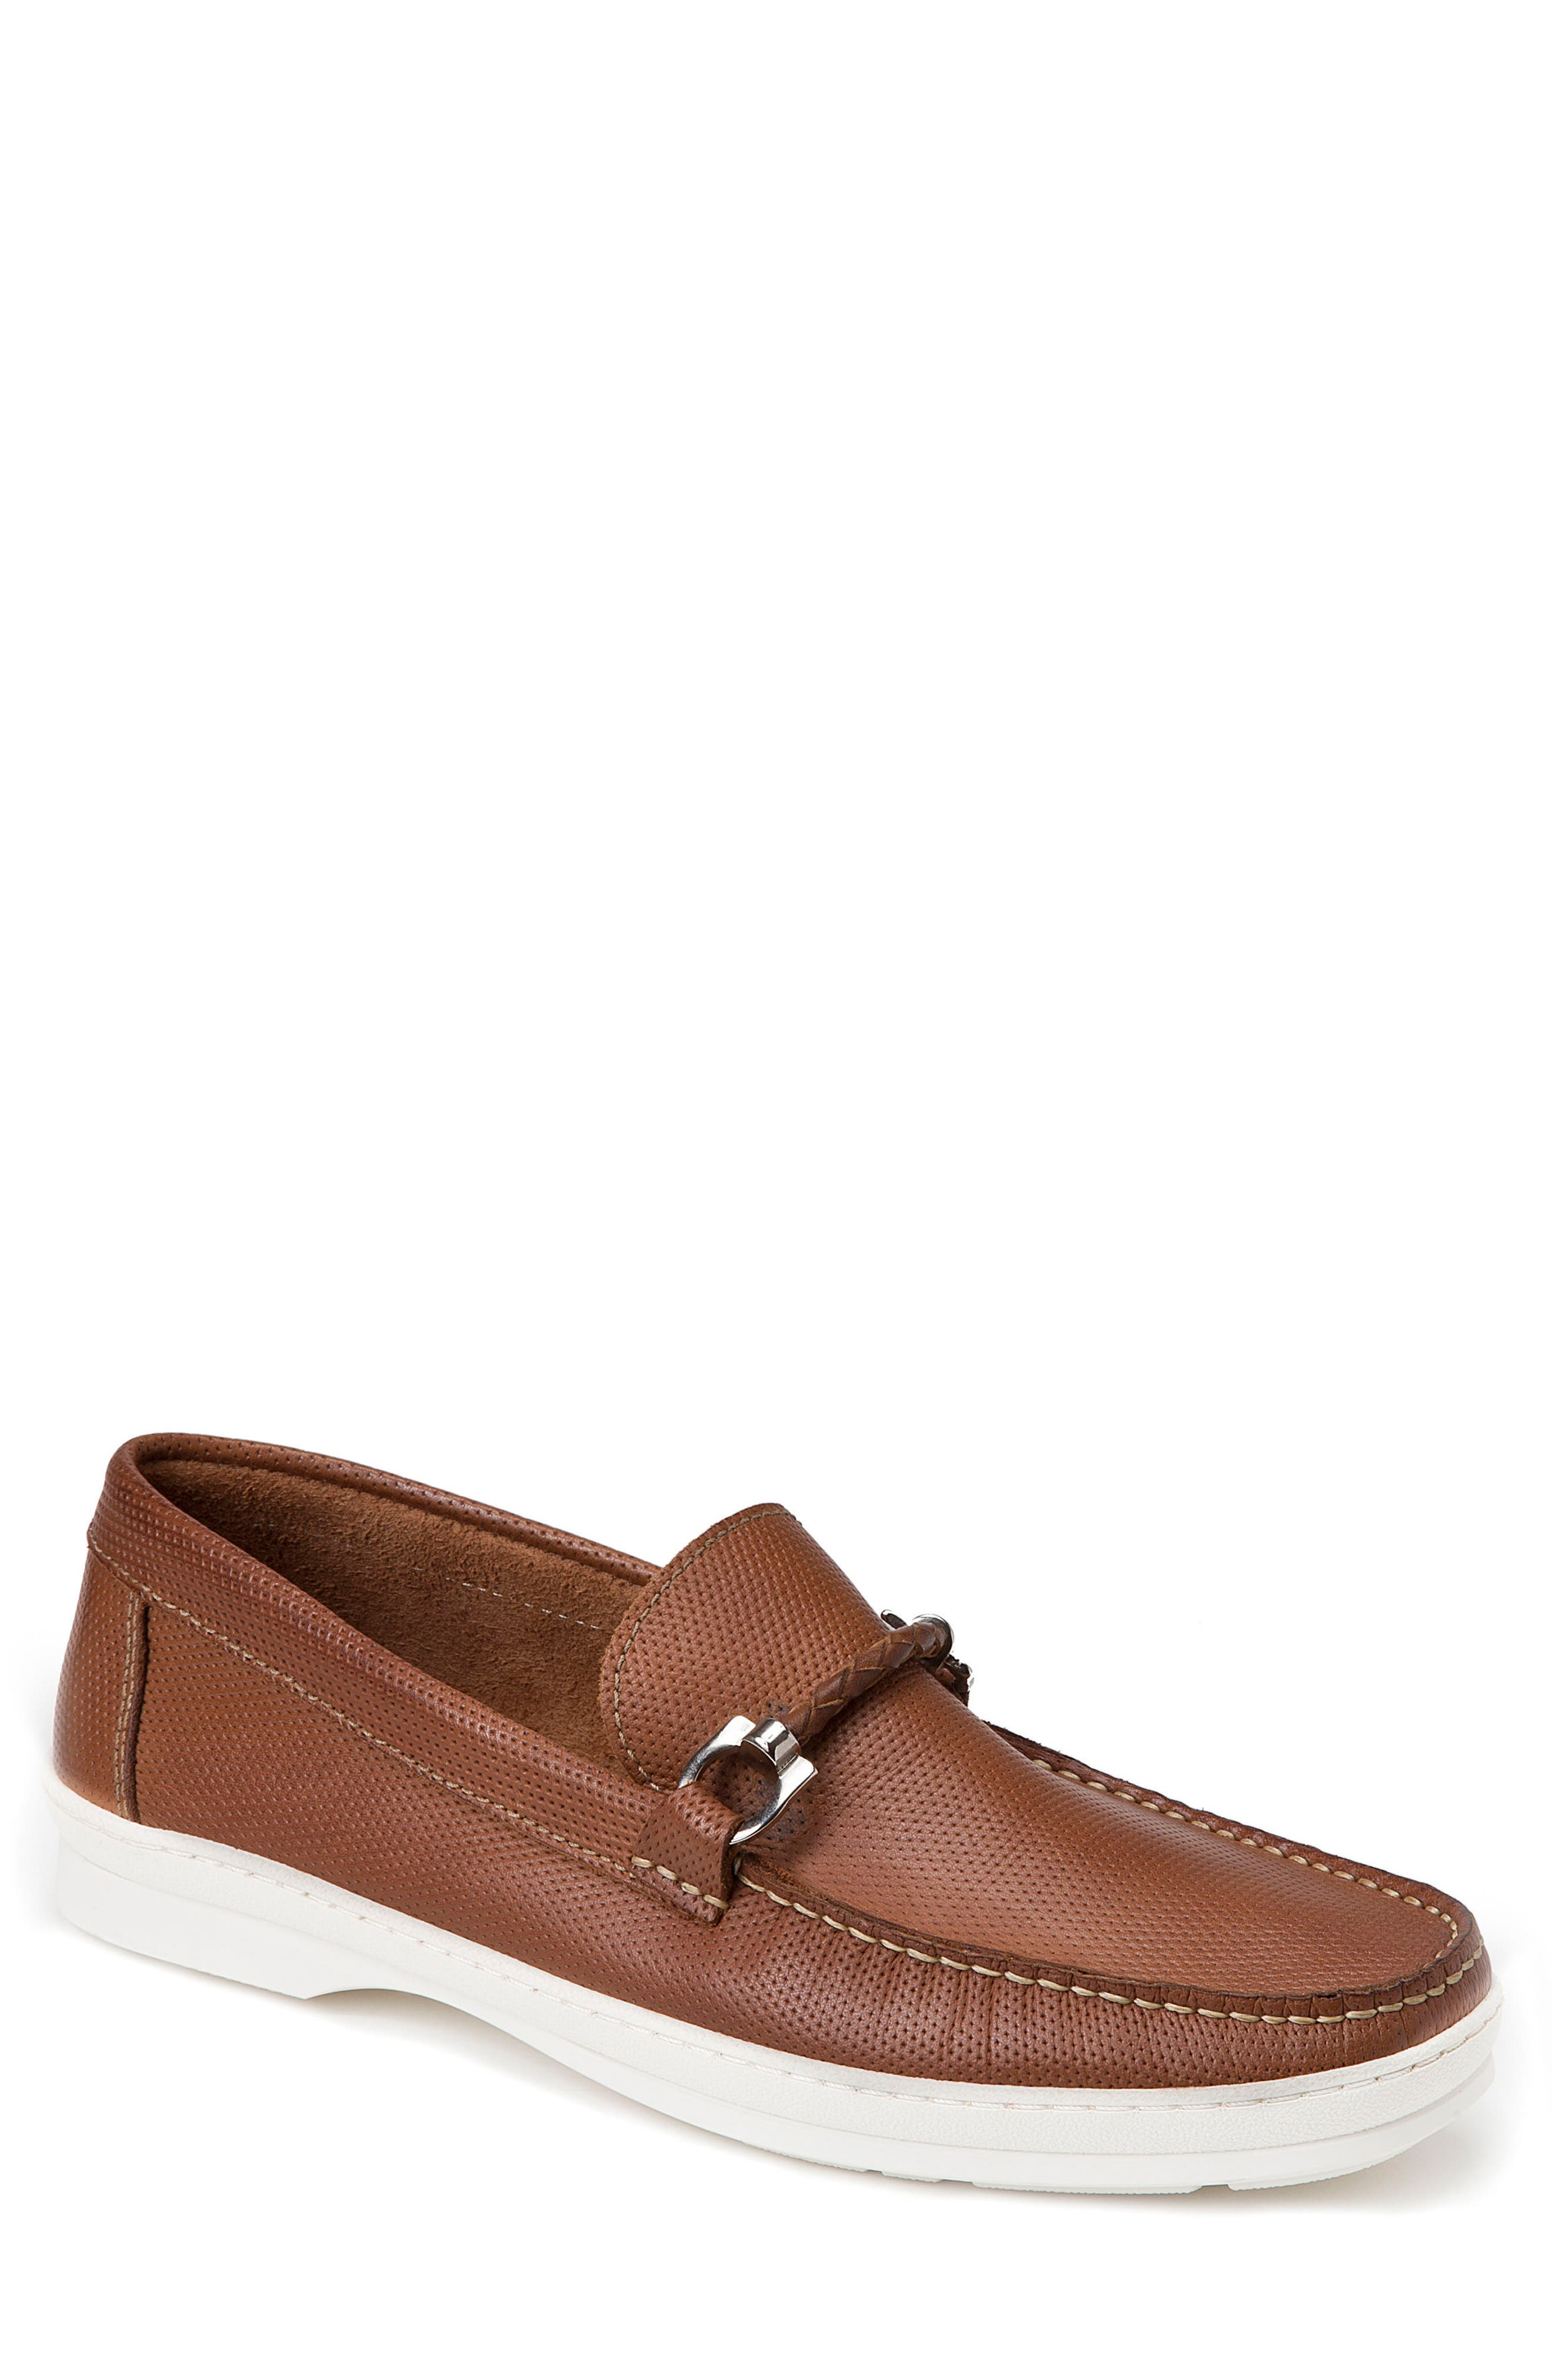 Benito Perforated Moc Toe Loafer,                             Main thumbnail 1, color,                             TAN LEATHER